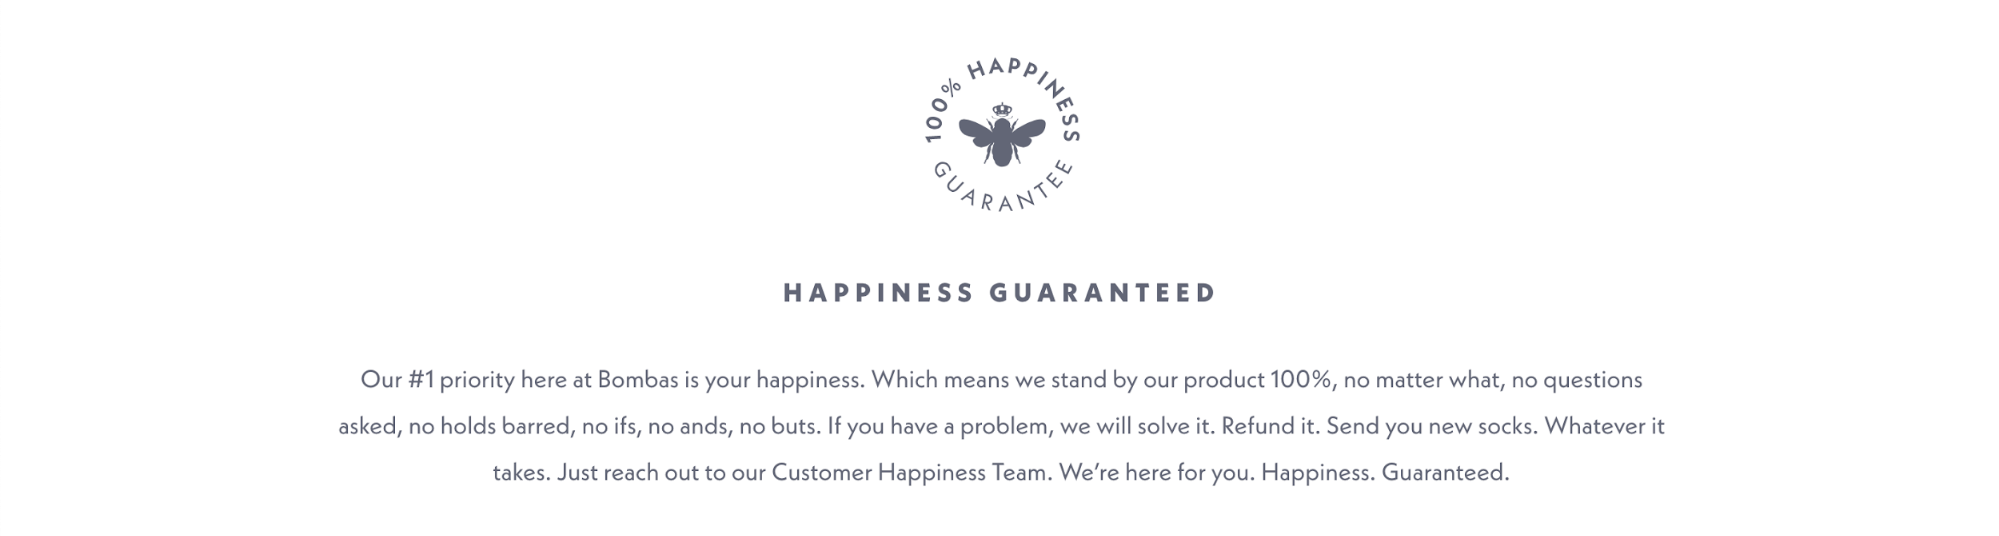 Bombas' Happiness Guaranteed page shapes their ecommerce customer service